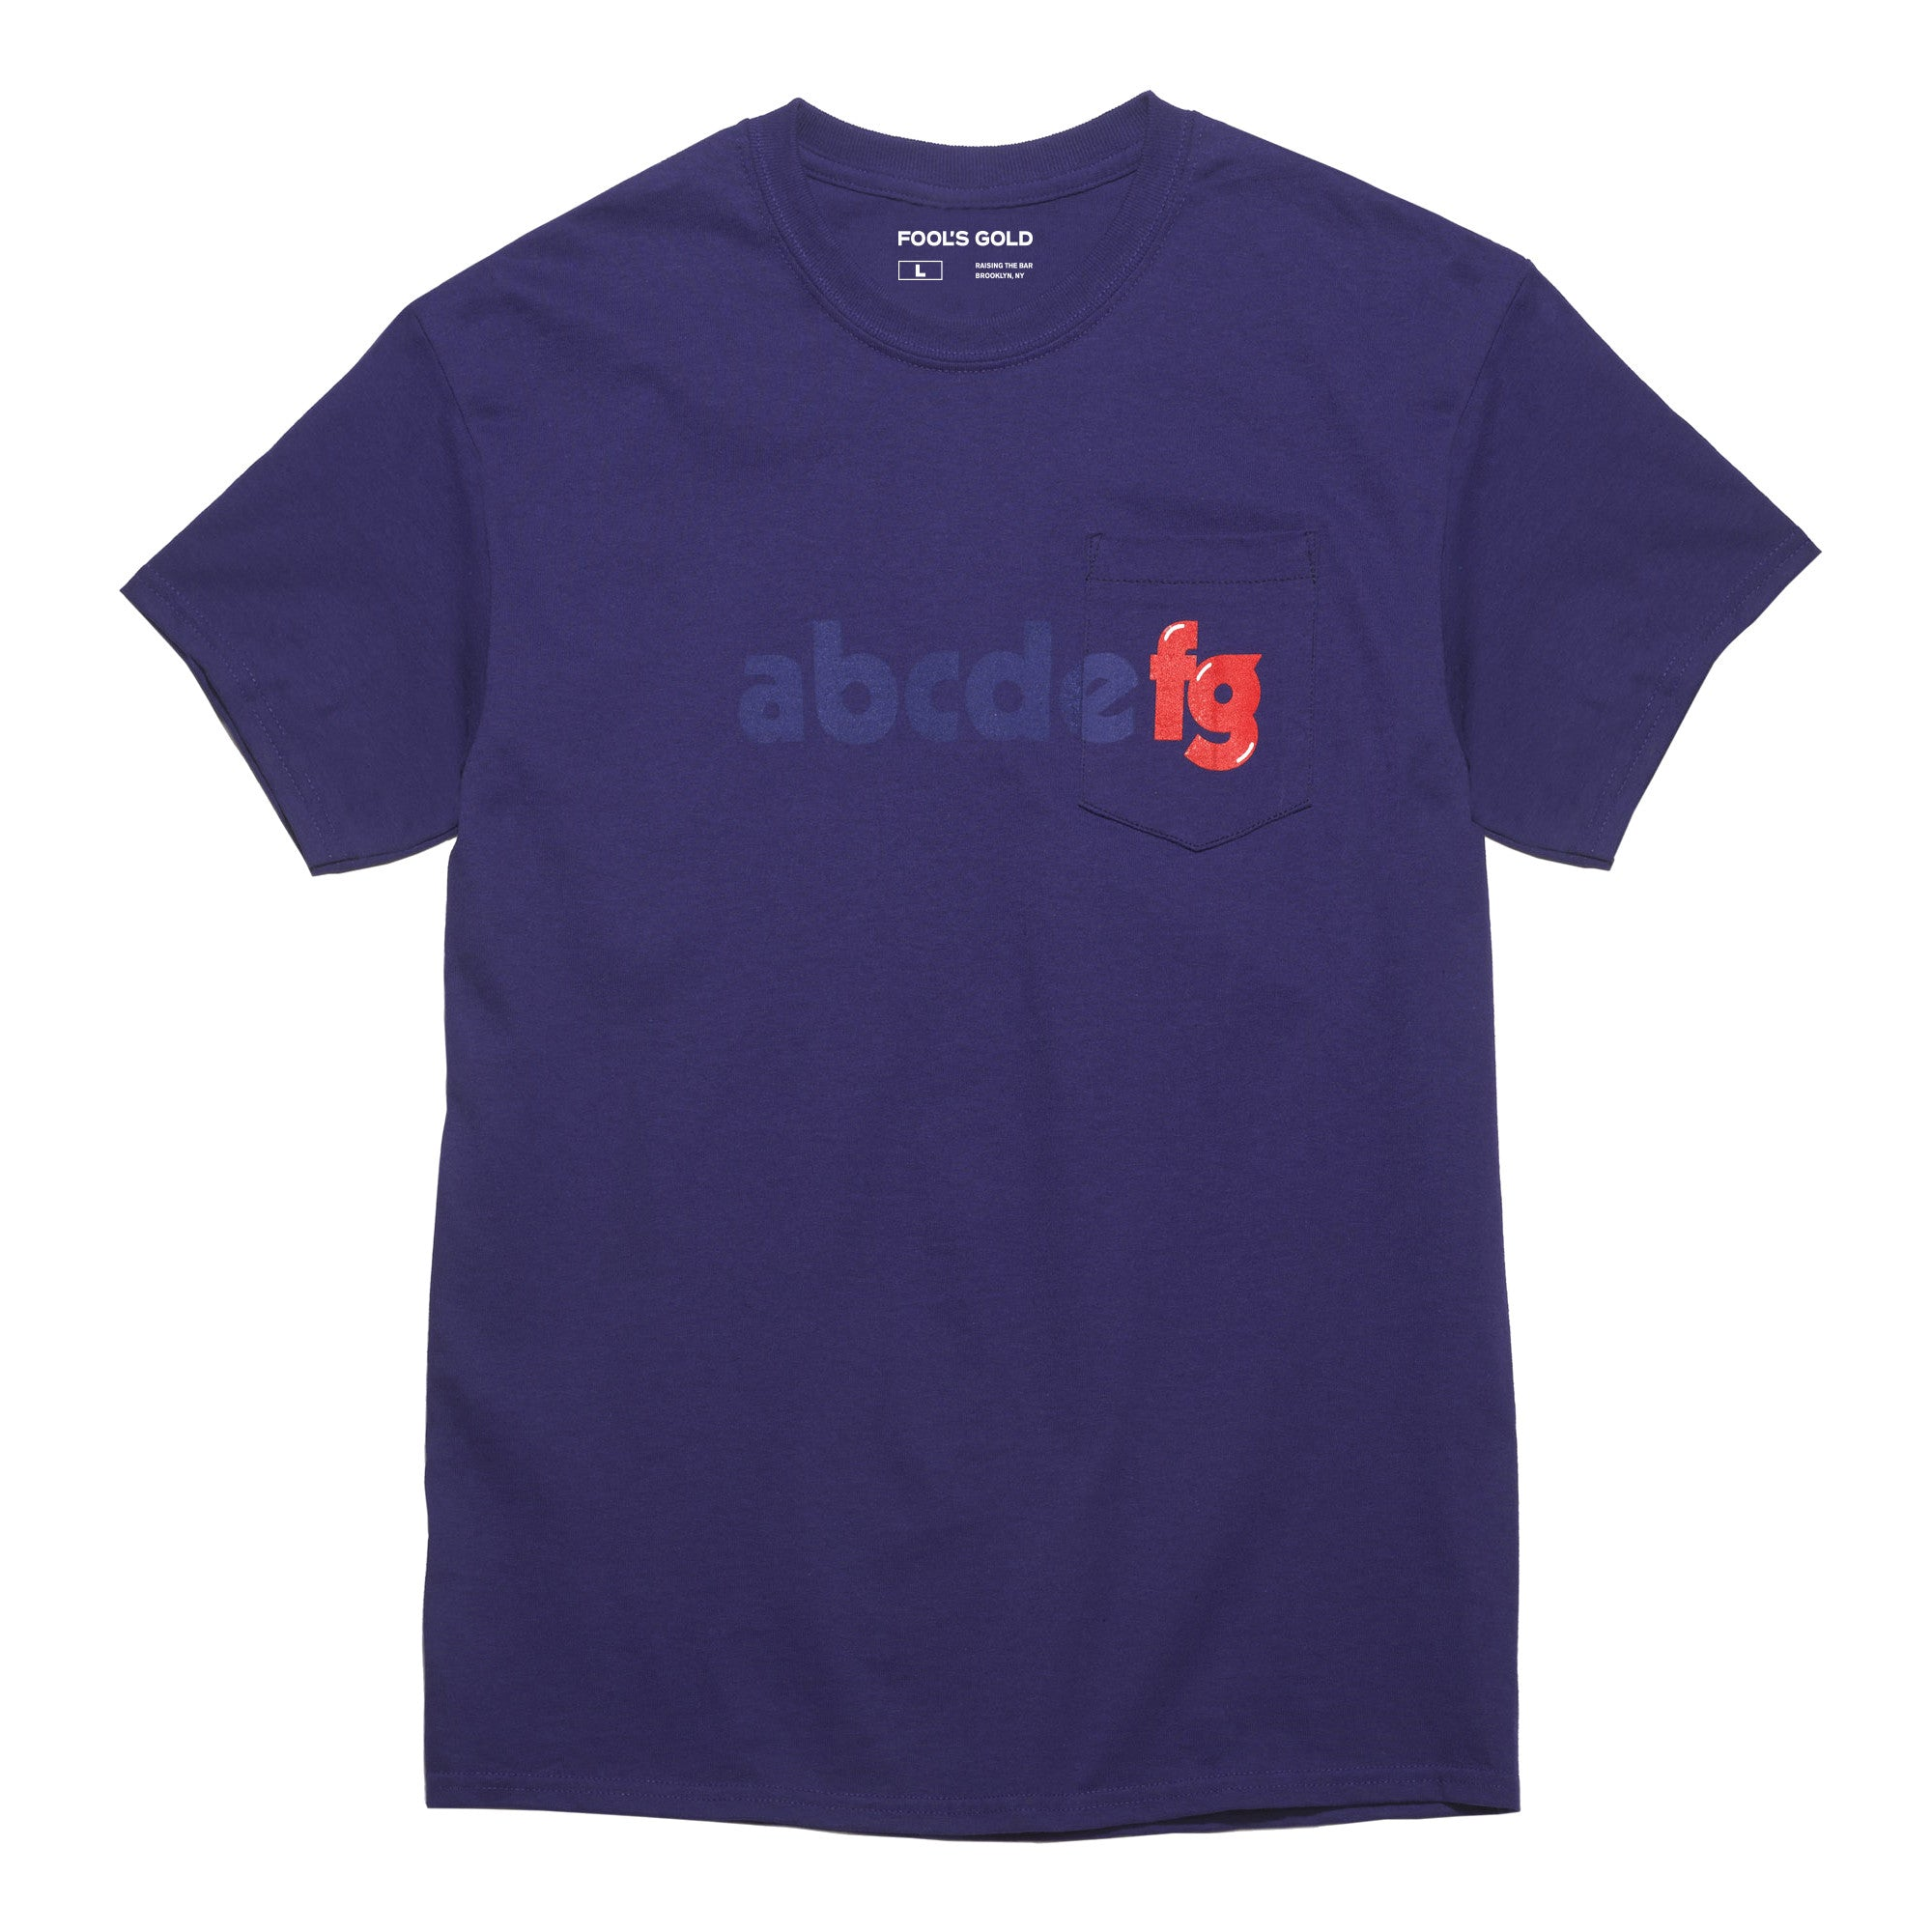 "Fool's Gold ""Alphabetical"" Tee - Purple"